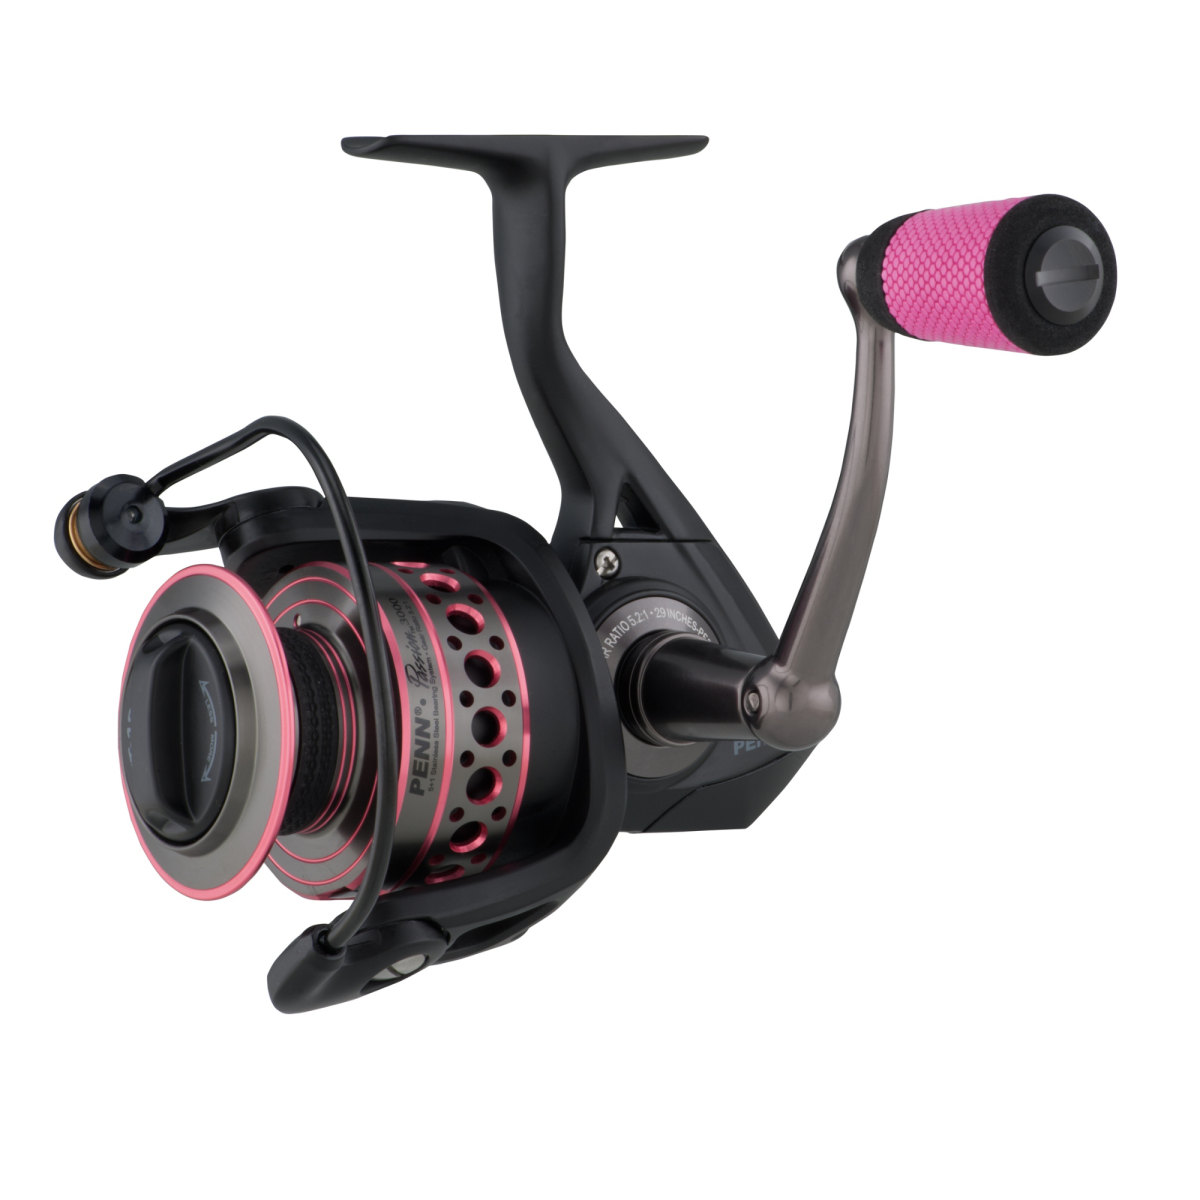 Penn PAS3000 Passion Spinning Reel